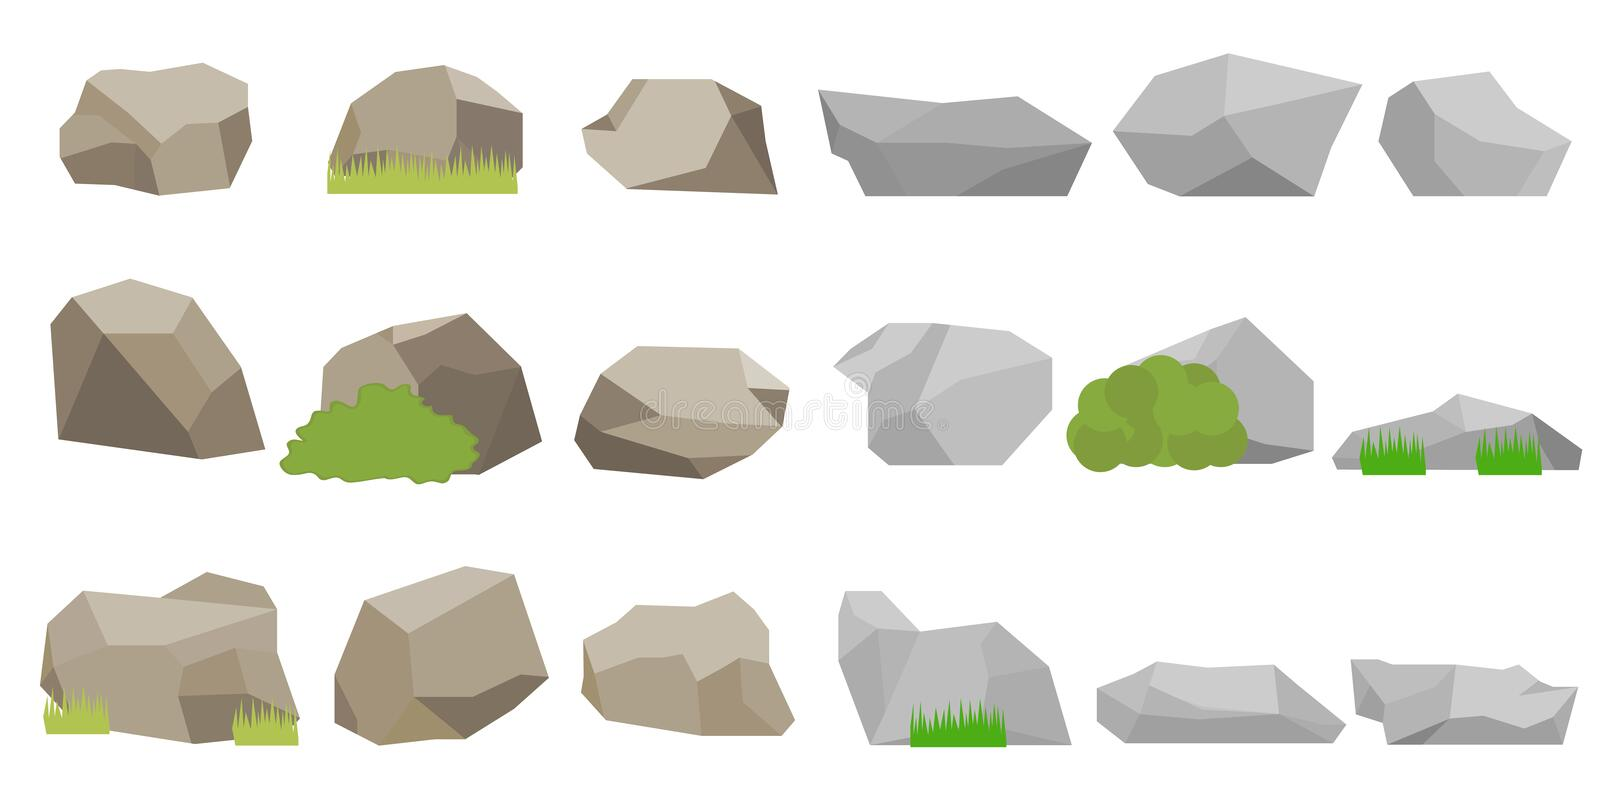 Stones, a set of stones. Flat design, vector illustration, vector royalty free illustration